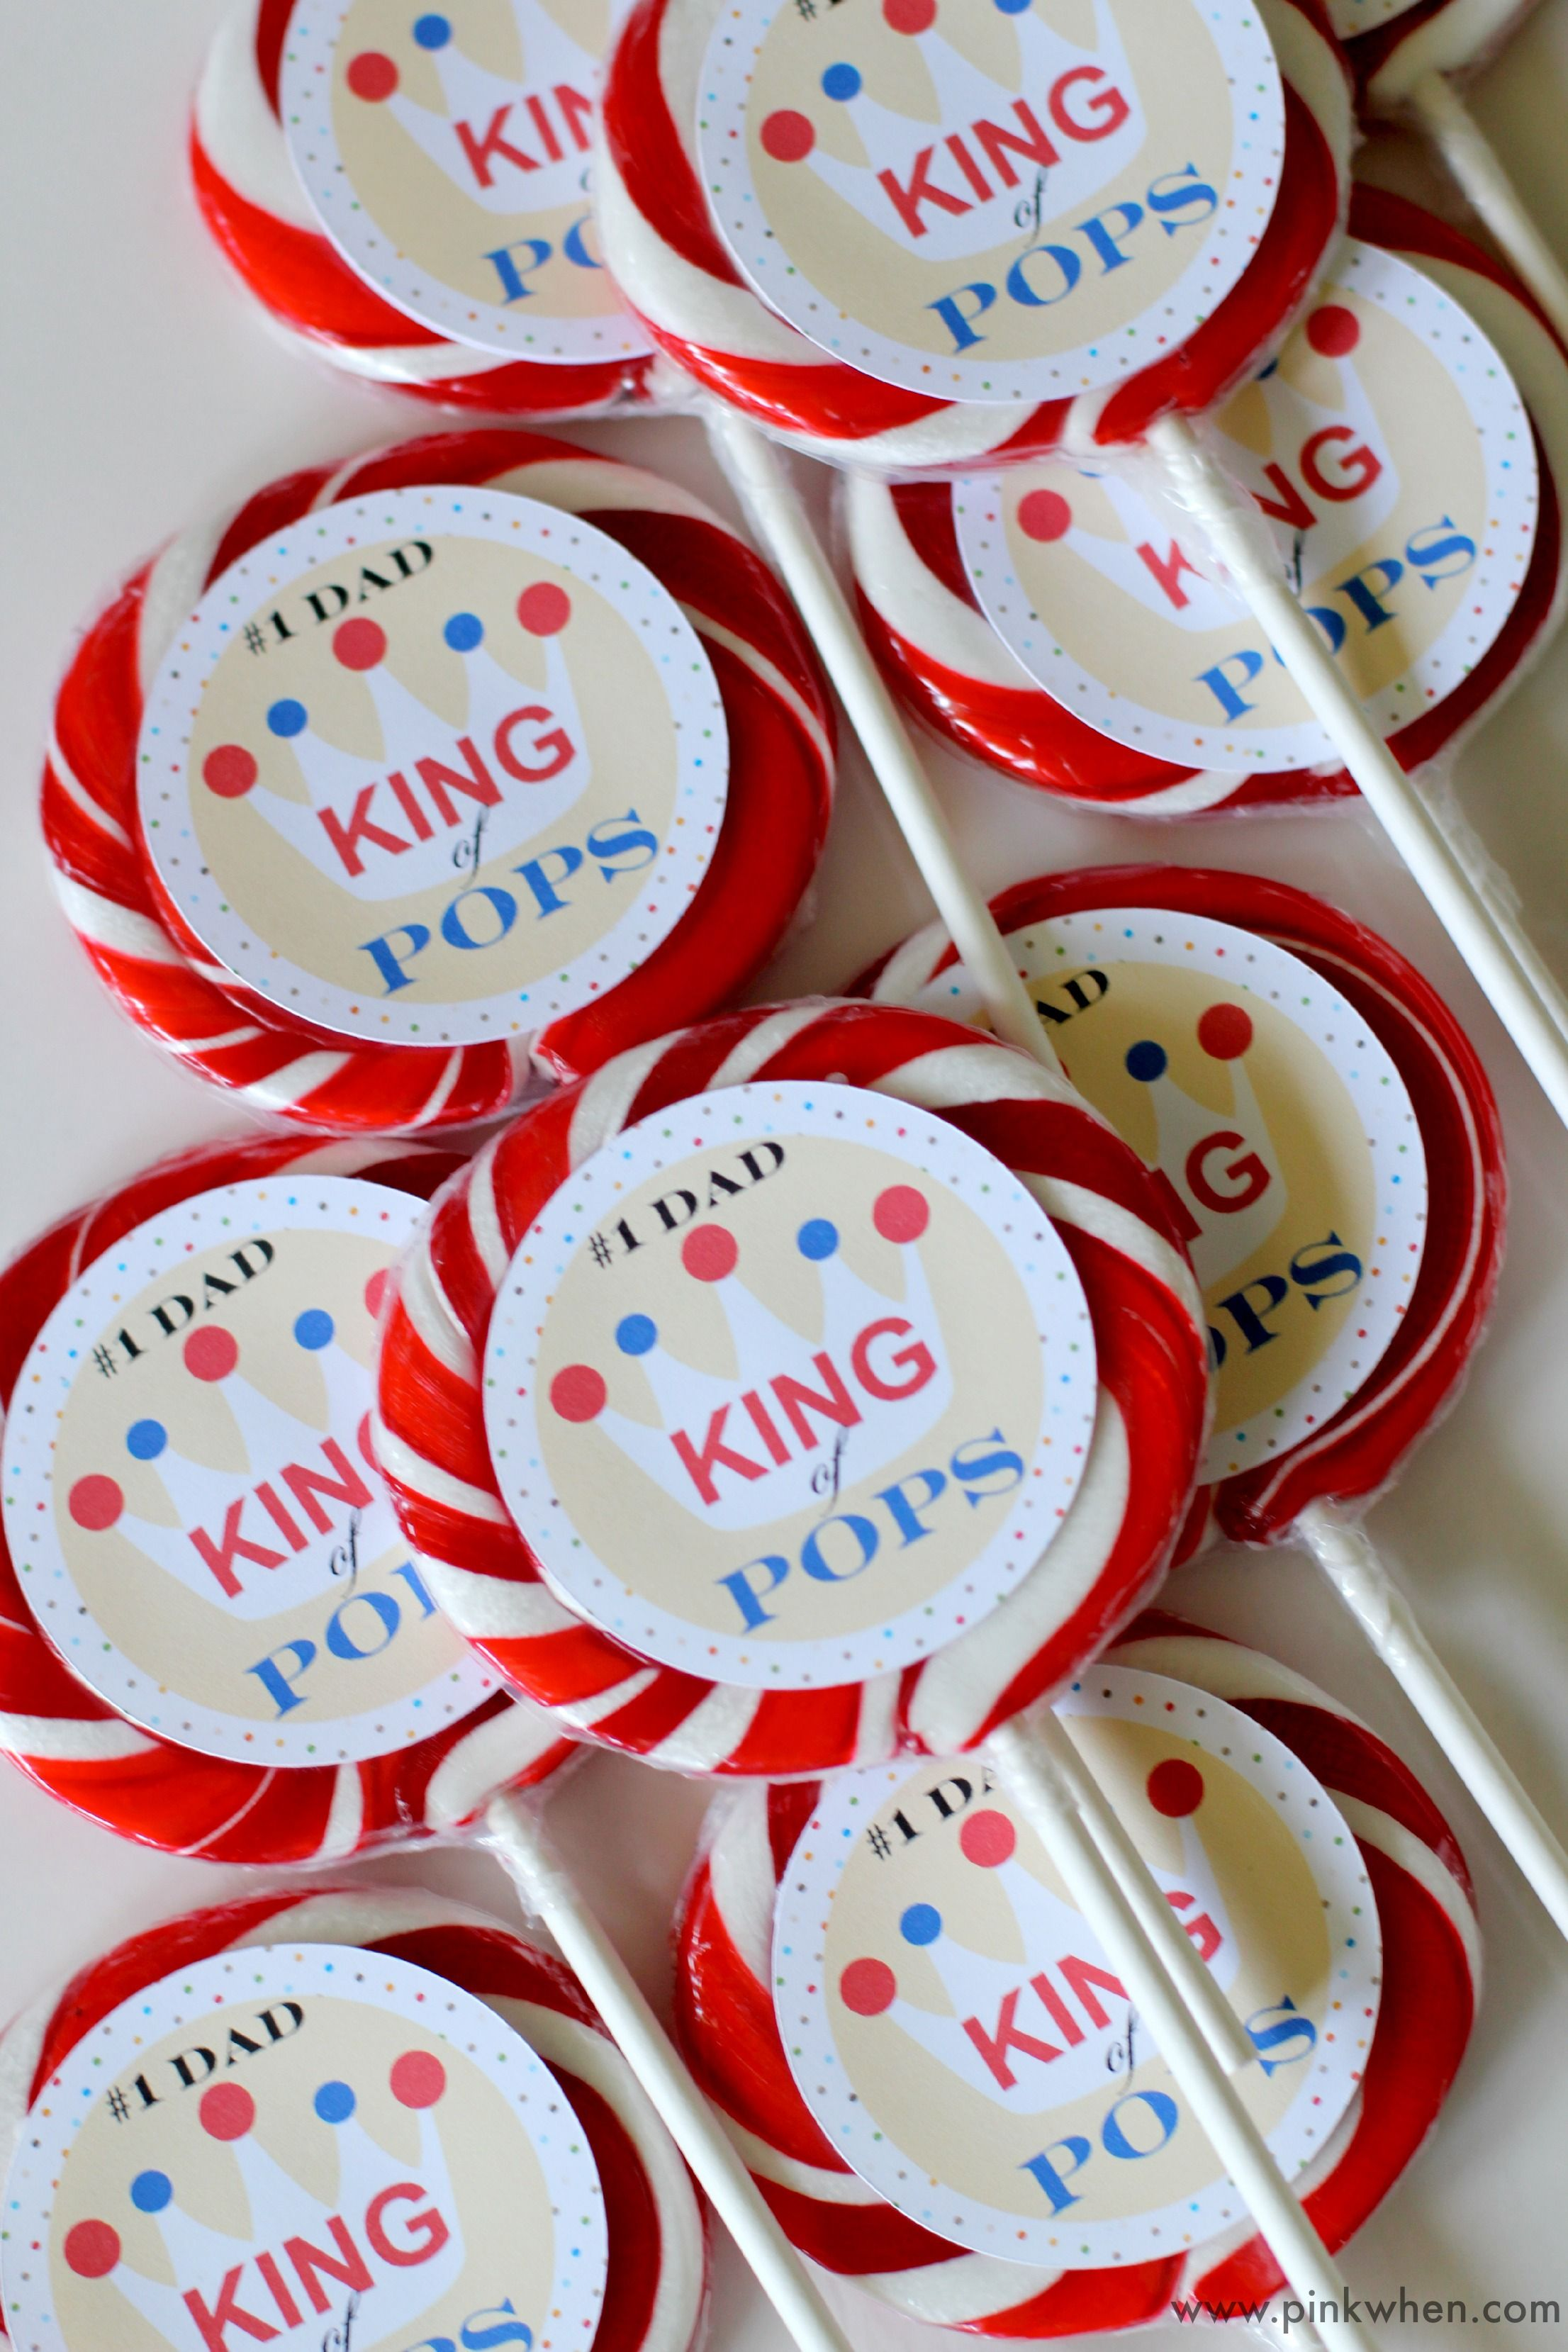 A fun and free Father's Day Printable for #1 Dad, the King of Pops!